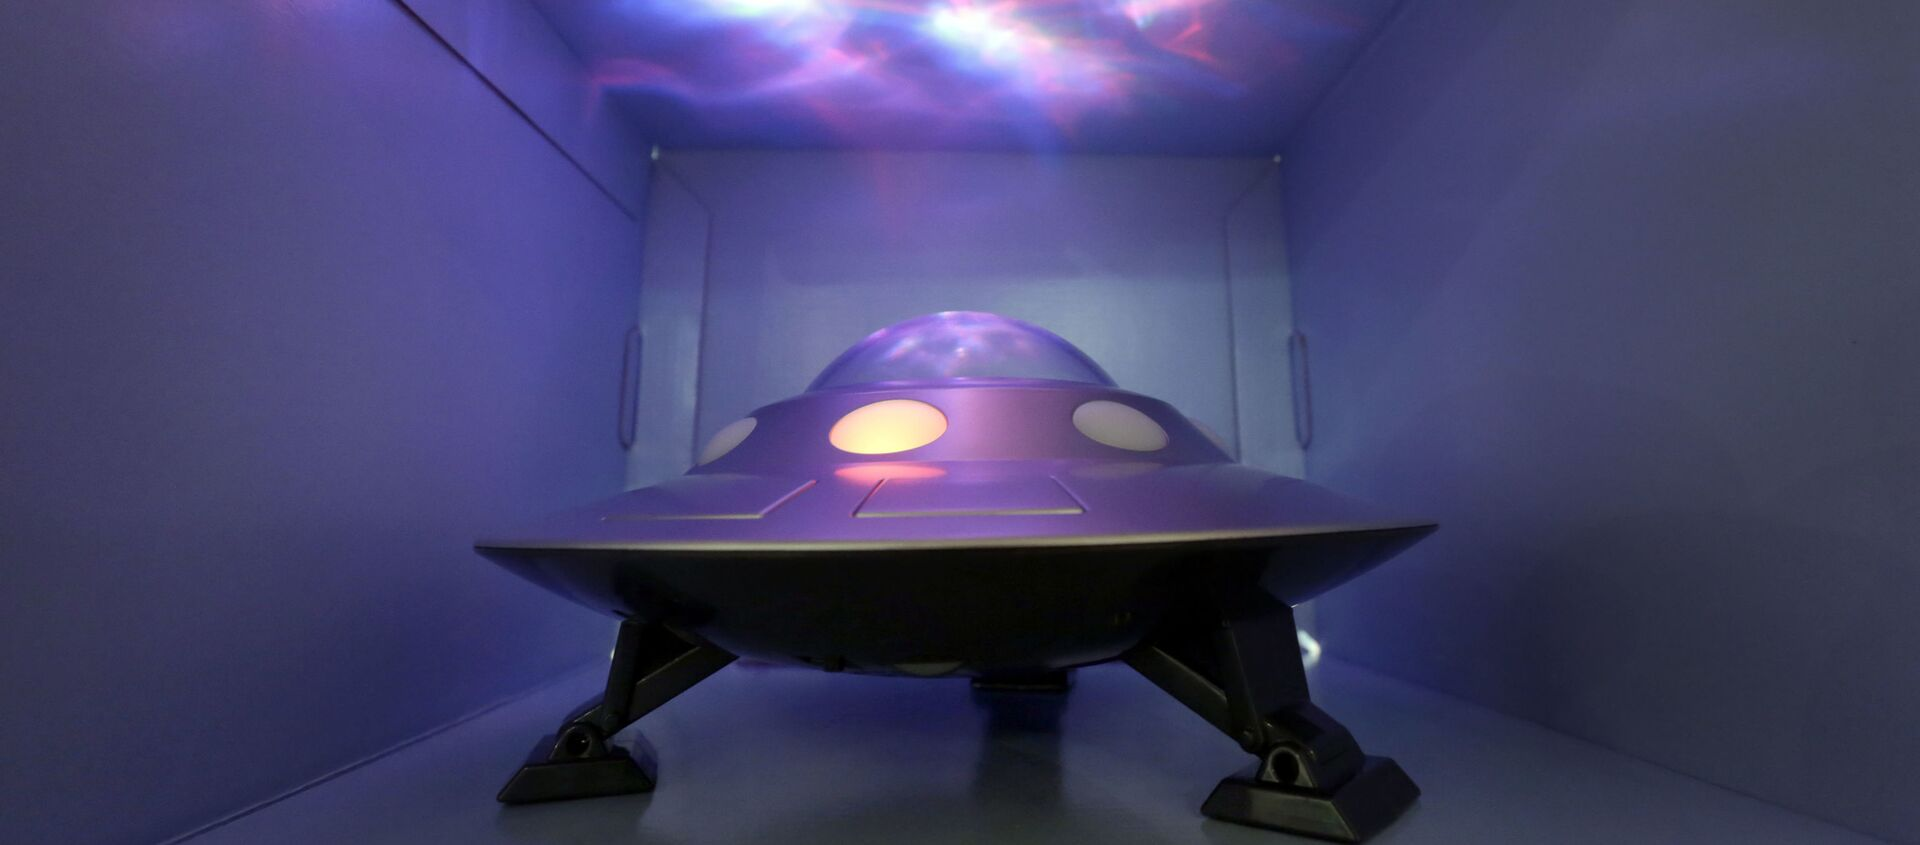 The Cosmic UFO, by Cloud b, that features moving projections of the Norther Lights, is demonstrated at the TTPM Holiday Showcase, in New York, Wednesday, Oct. 1, 2014. - Sputnik International, 1920, 06.07.2021